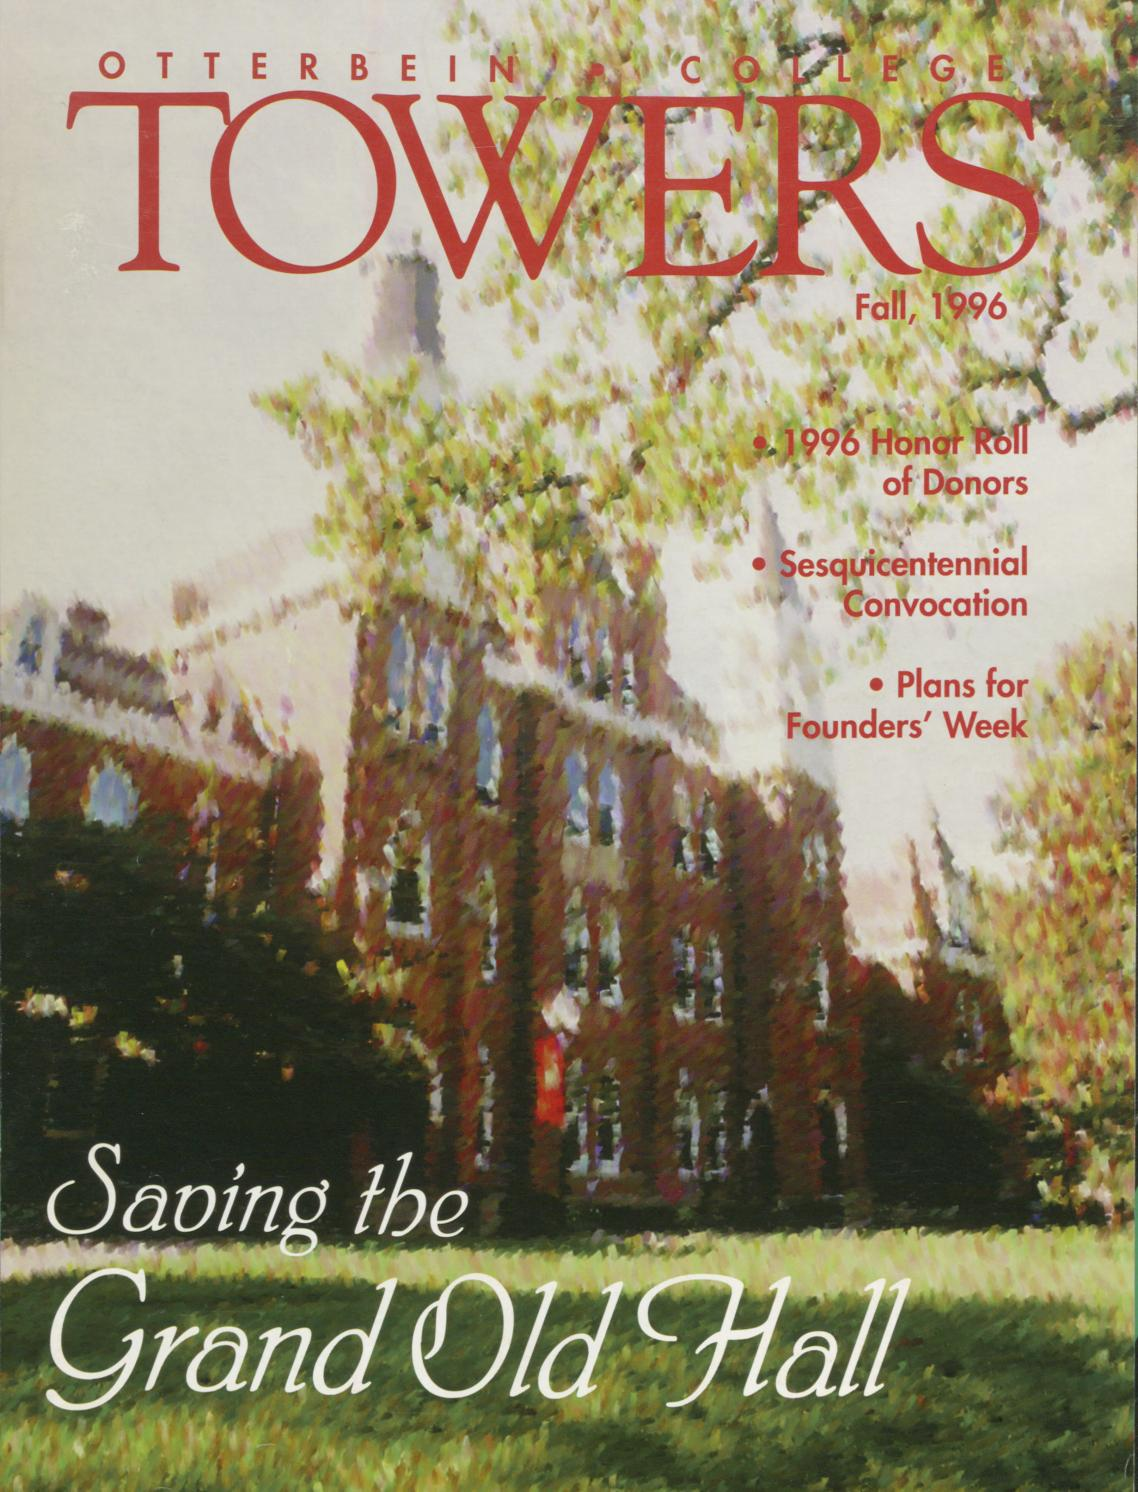 a place to call home by amy schisler reviews discussion a place to call home book Otterbein Towers 1996 Fall by Otterbein University - issuu